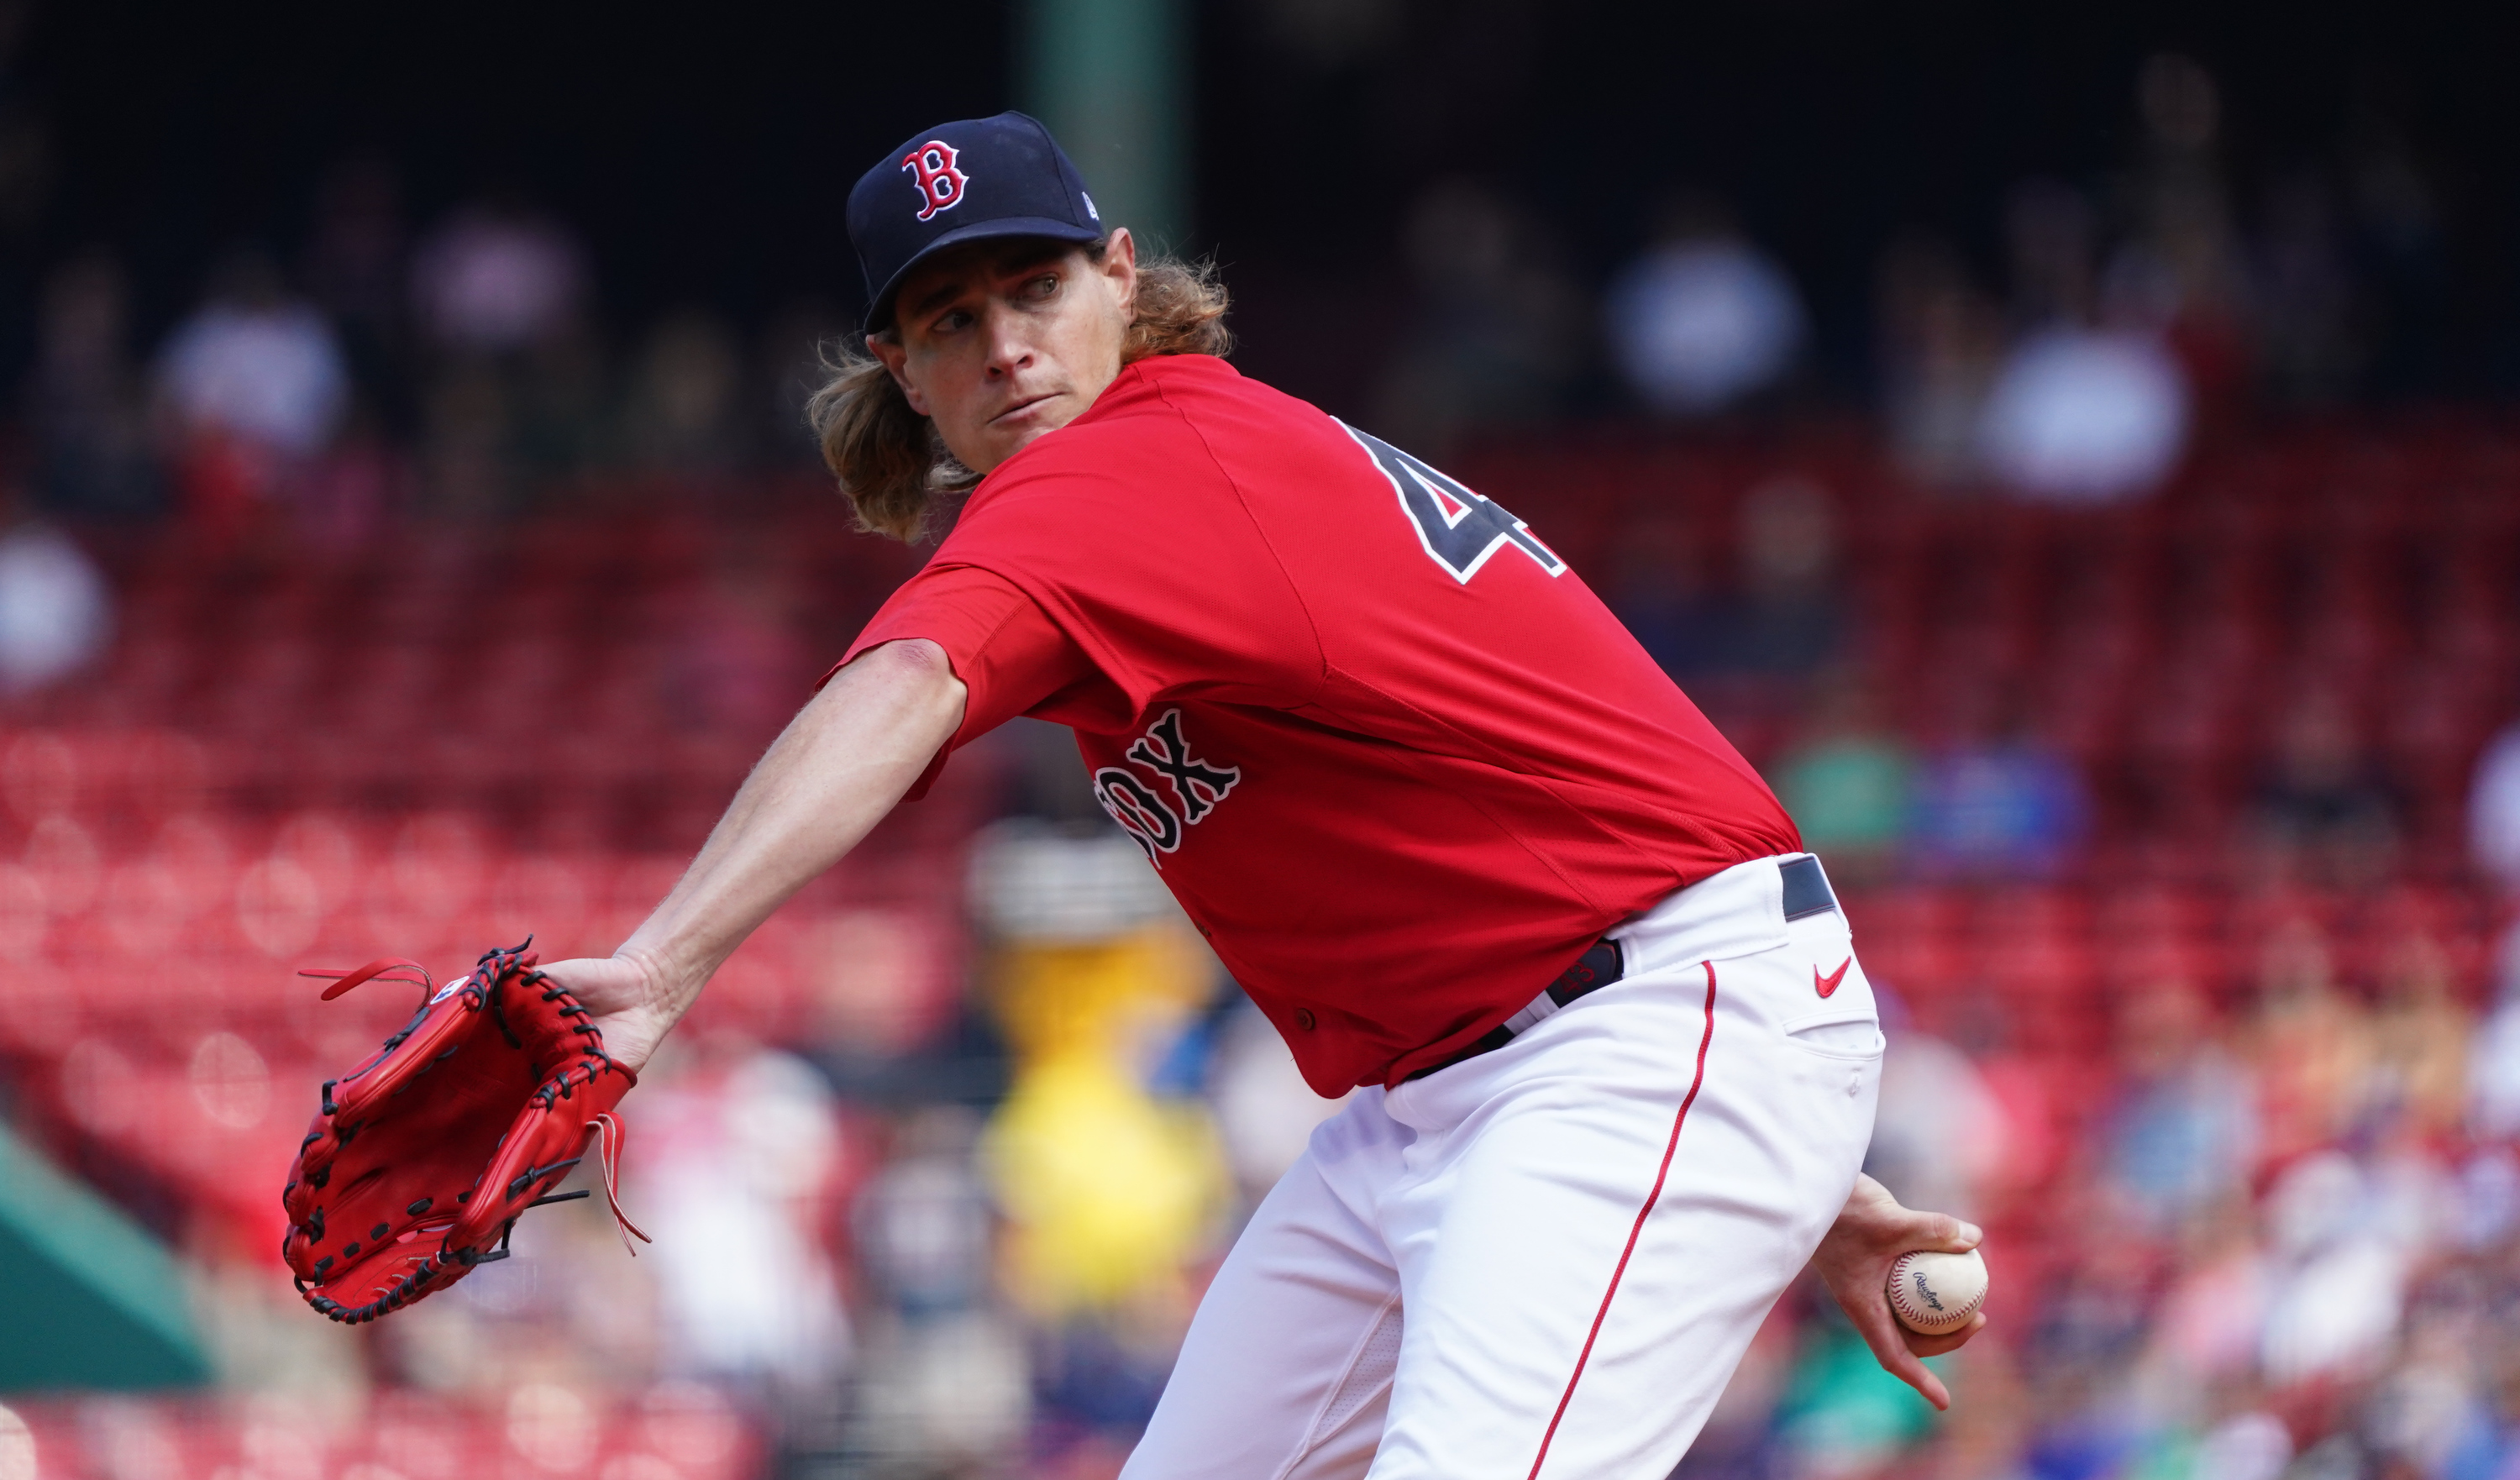 Jul 28, 2021; Boston, Massachusetts, USA; Boston Red Sox starting pitcher Garrett Richards (43) throws a pitch against the Toronto Blue Jays in the first inning at Fenway Park. Mandatory Credit: David Butler II-USA TODAY Sports